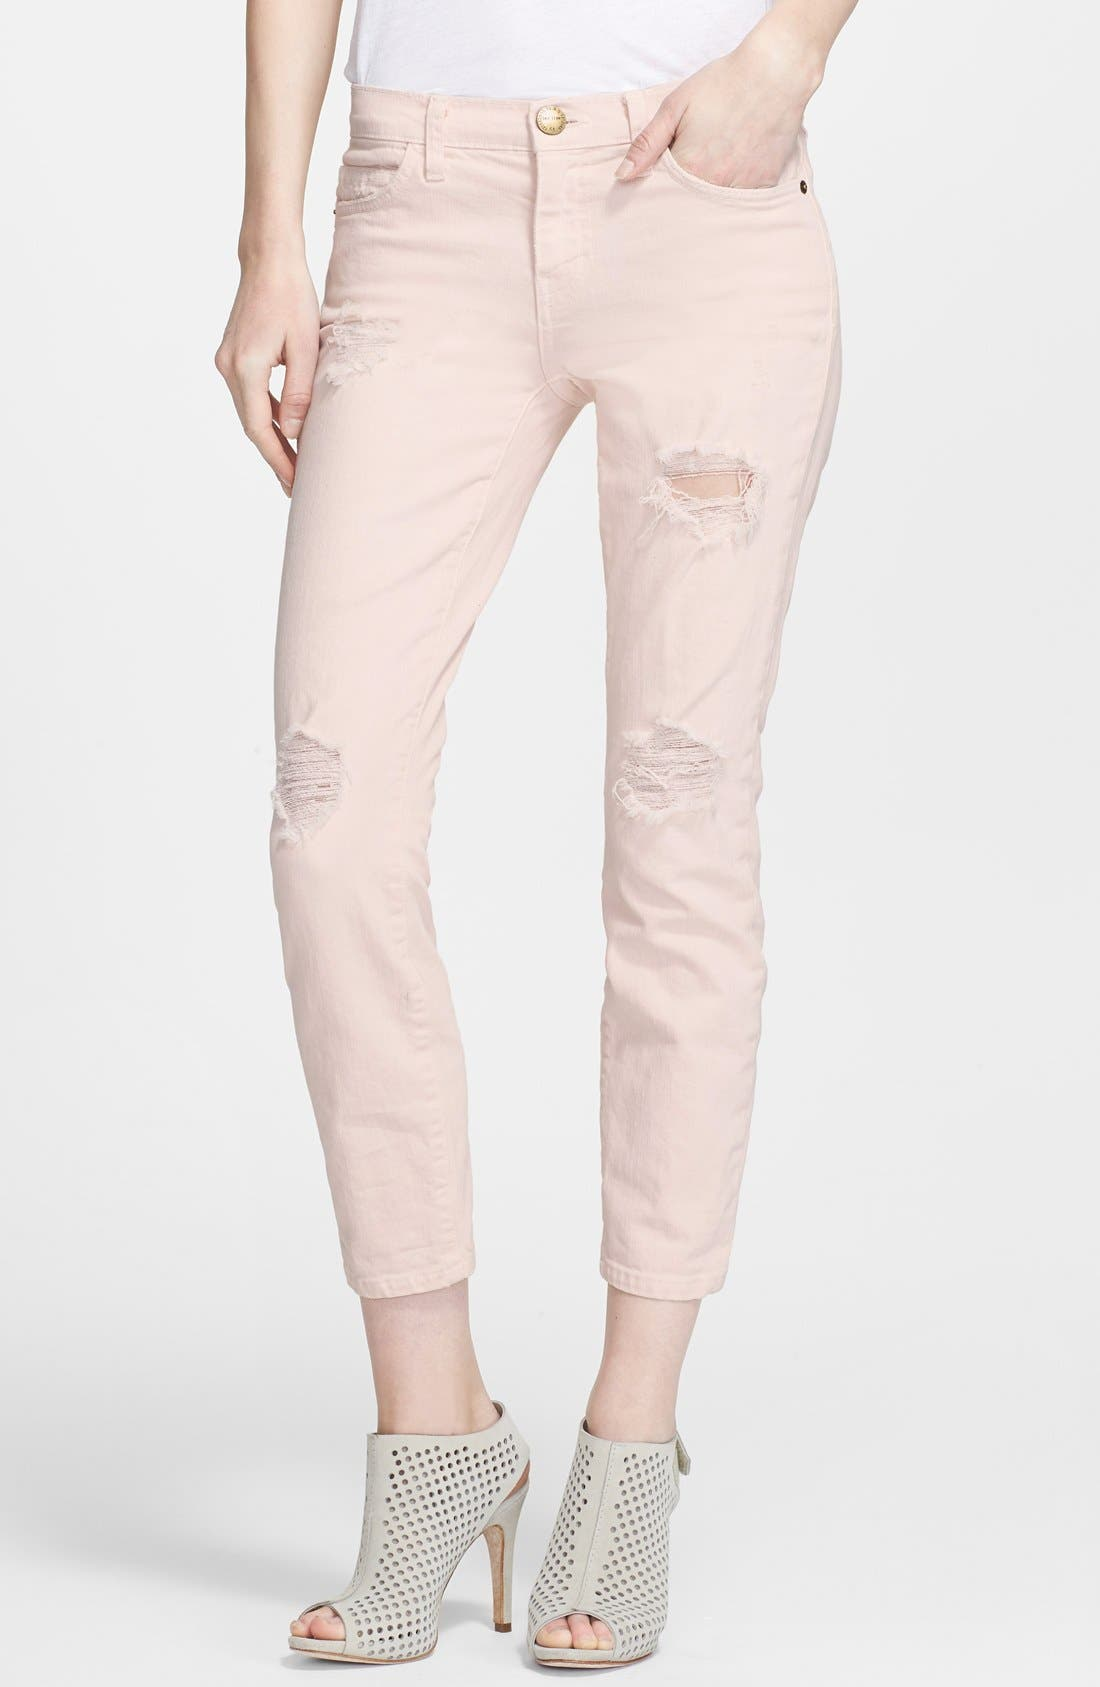 Main Image - Current/Elliott 'The Stiletto' Jeans (Dusty Pink)